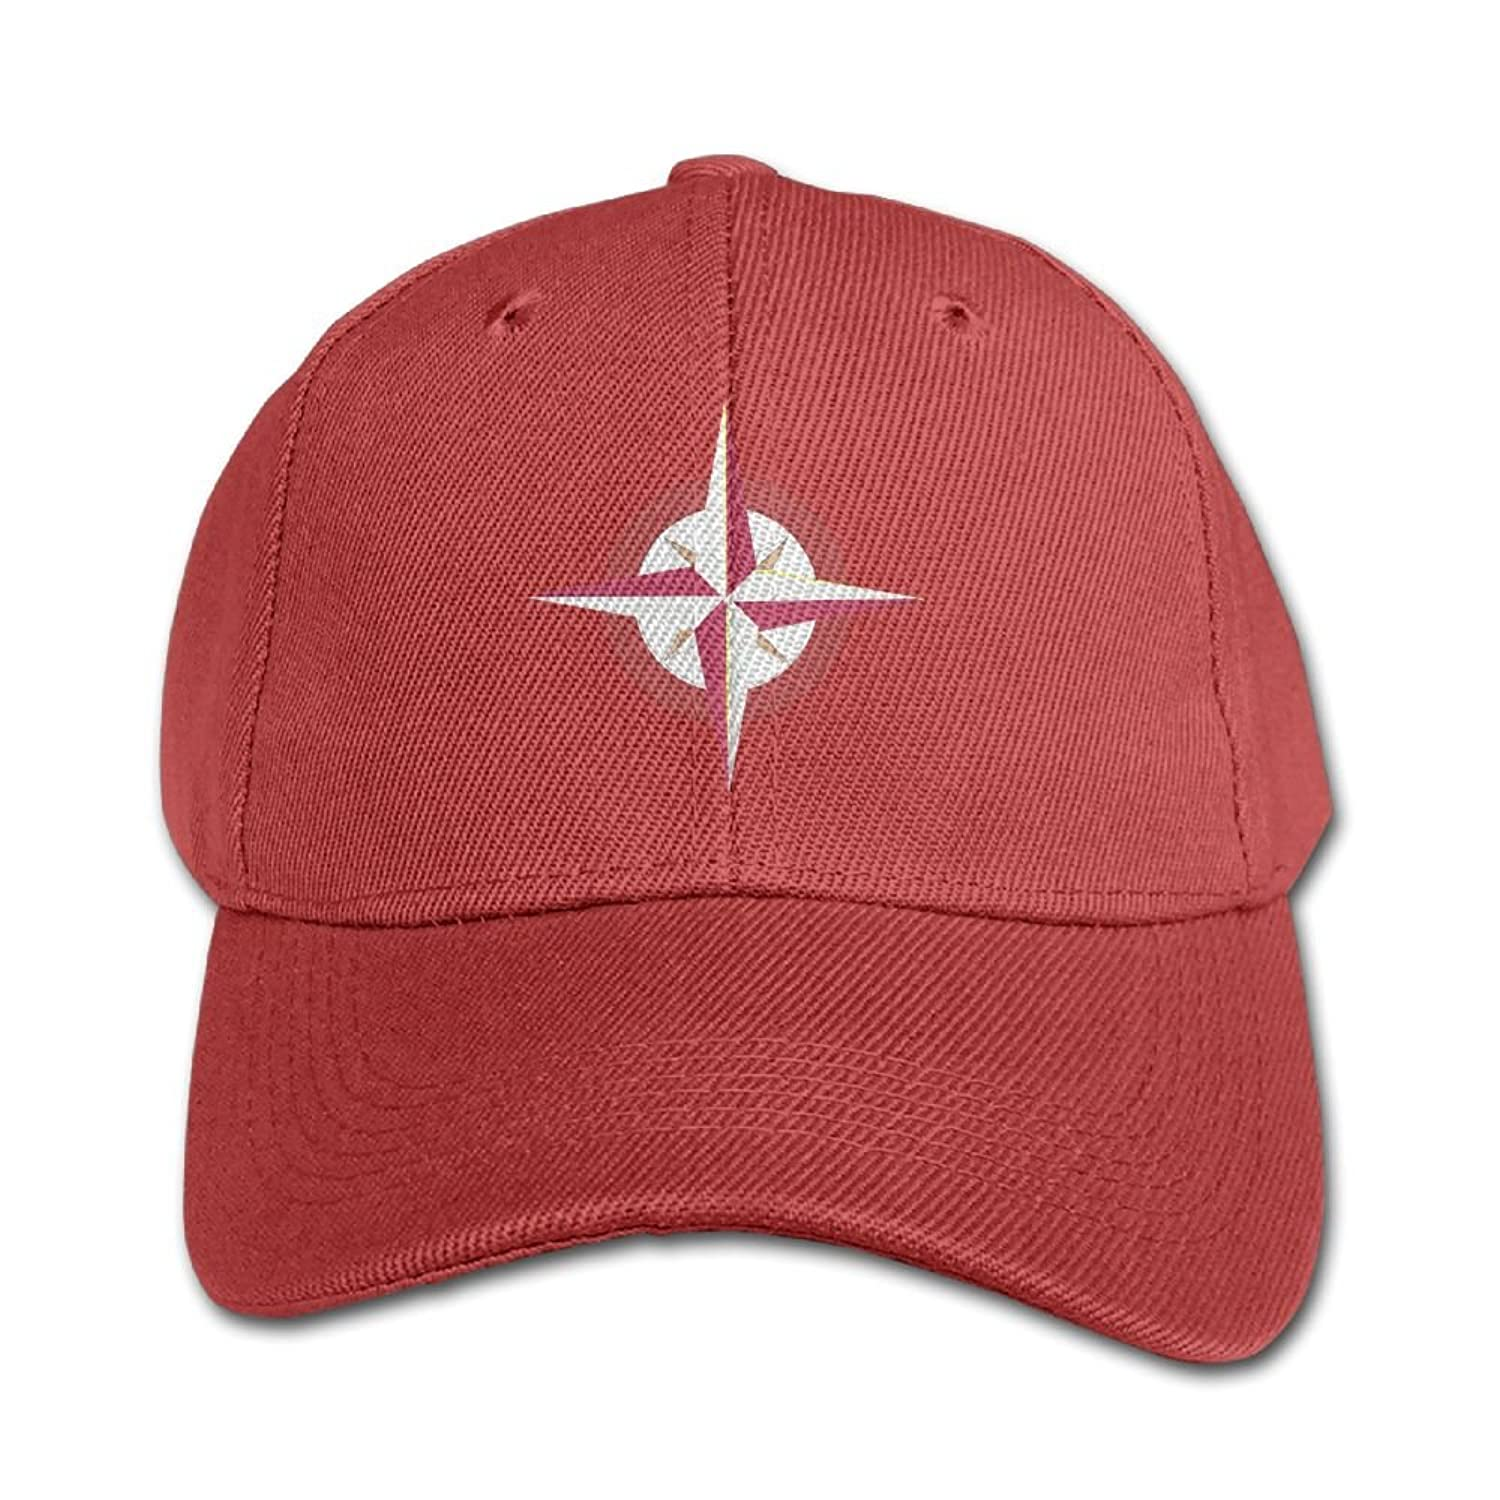 cheap Huajsu Tan-Red-Compass Unisex Design 100% Cotton Flat Hat Baseball Cap Hip-Hop Peaked Cap Adjustable Cap Hat For Boy &Girl Navy hot sale